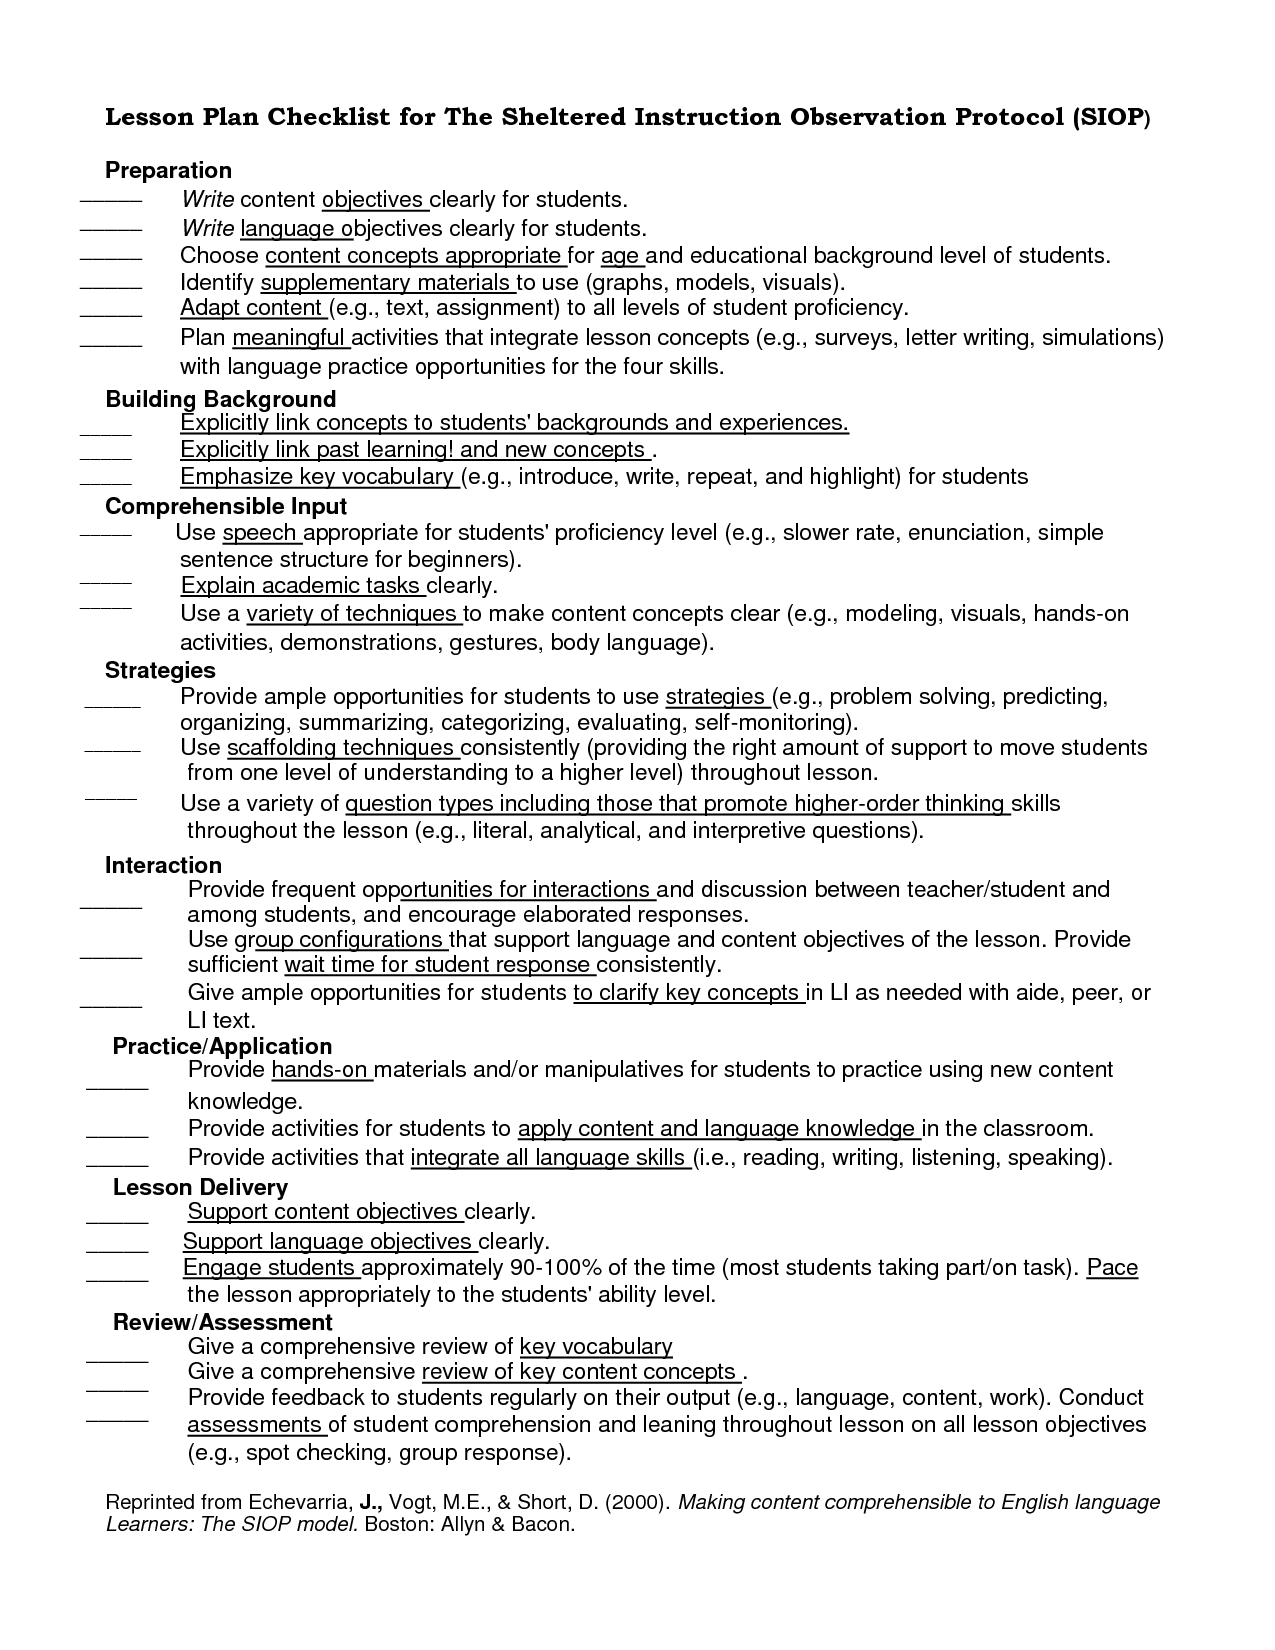 Lesson Plan Checklist For The Sheltered Instruction Observation Doc ...